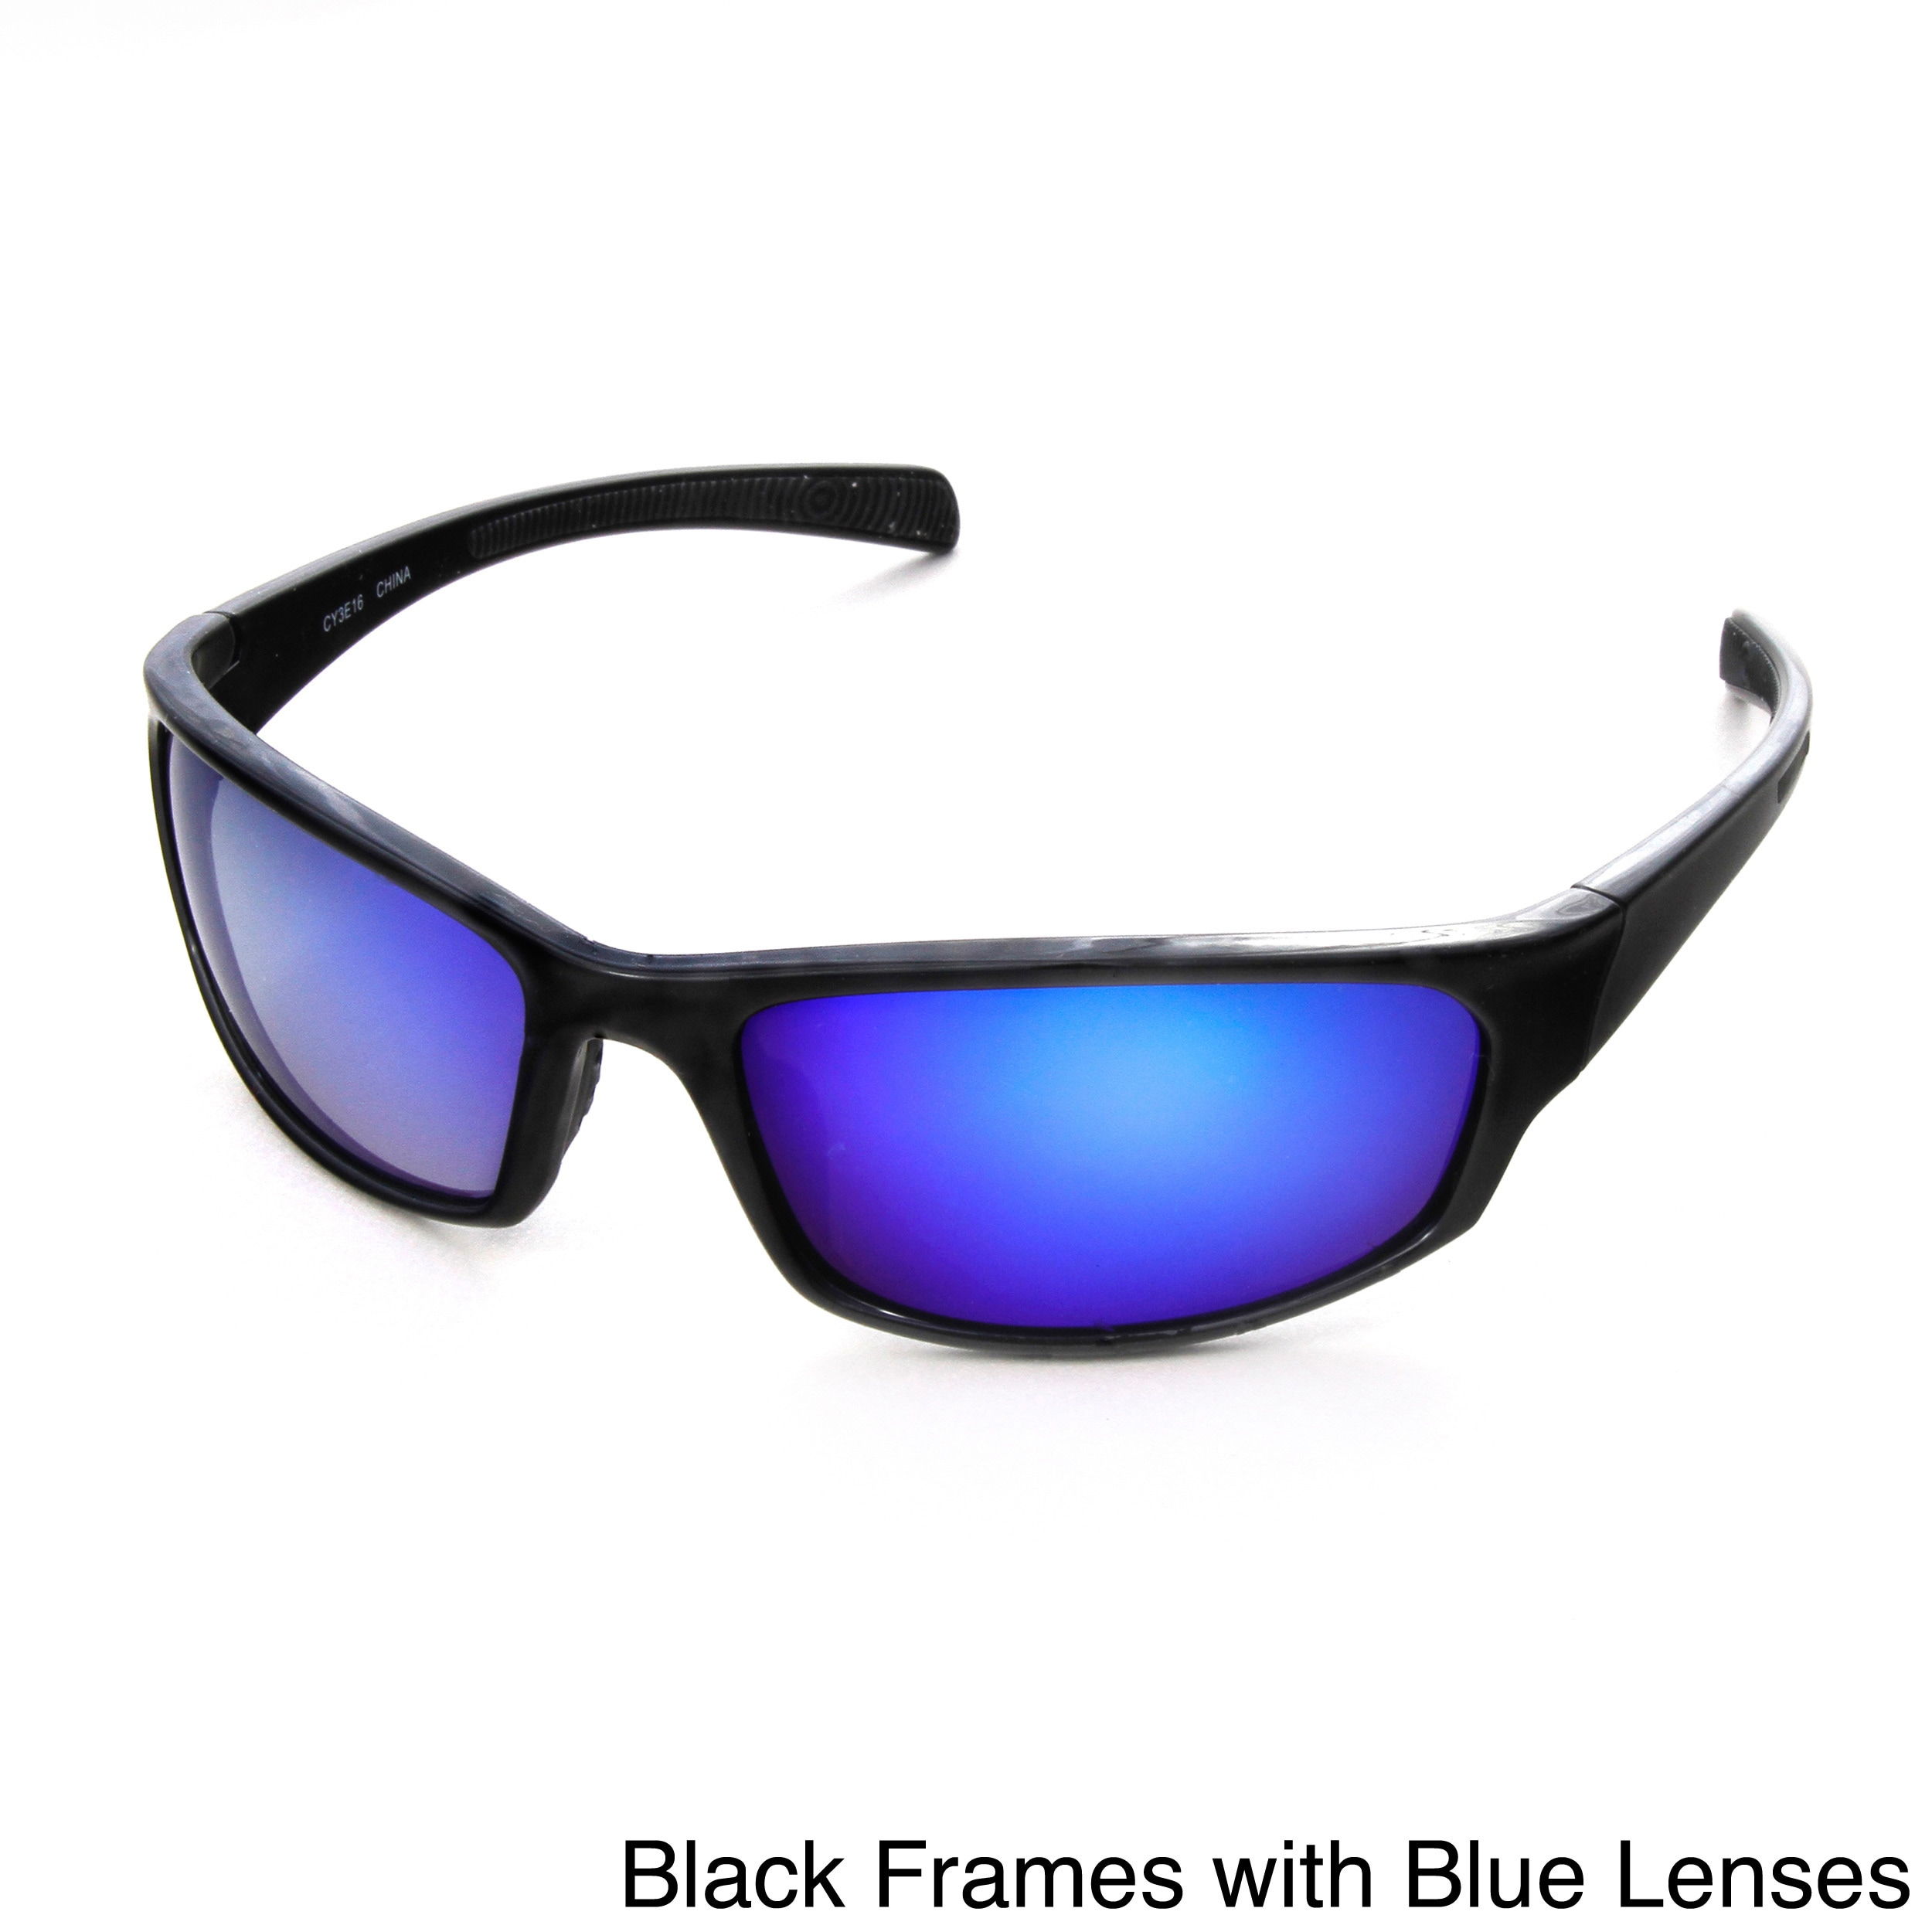 22bdb8ba53 Shop Hot Optix Men s Mirrored Polarized Sunglasses - Free Shipping On  Orders Over  45 - Overstock - 8930379